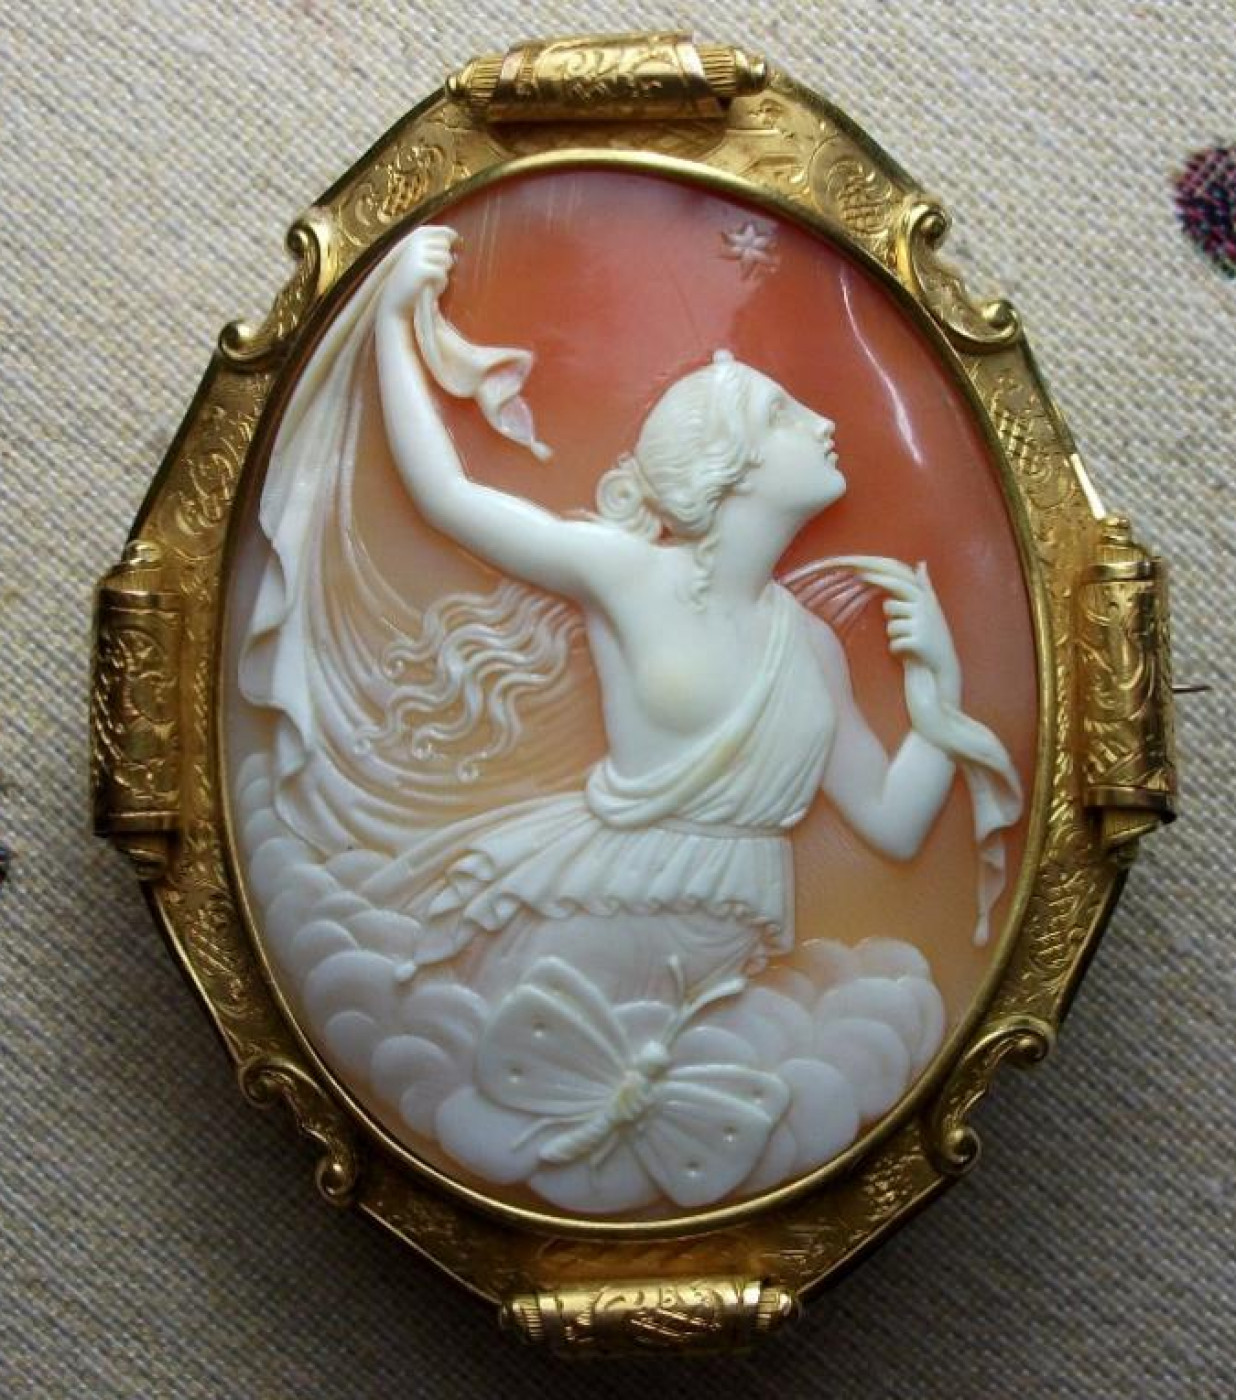 Gorgeous Shell Cameo Brooch of Psyche